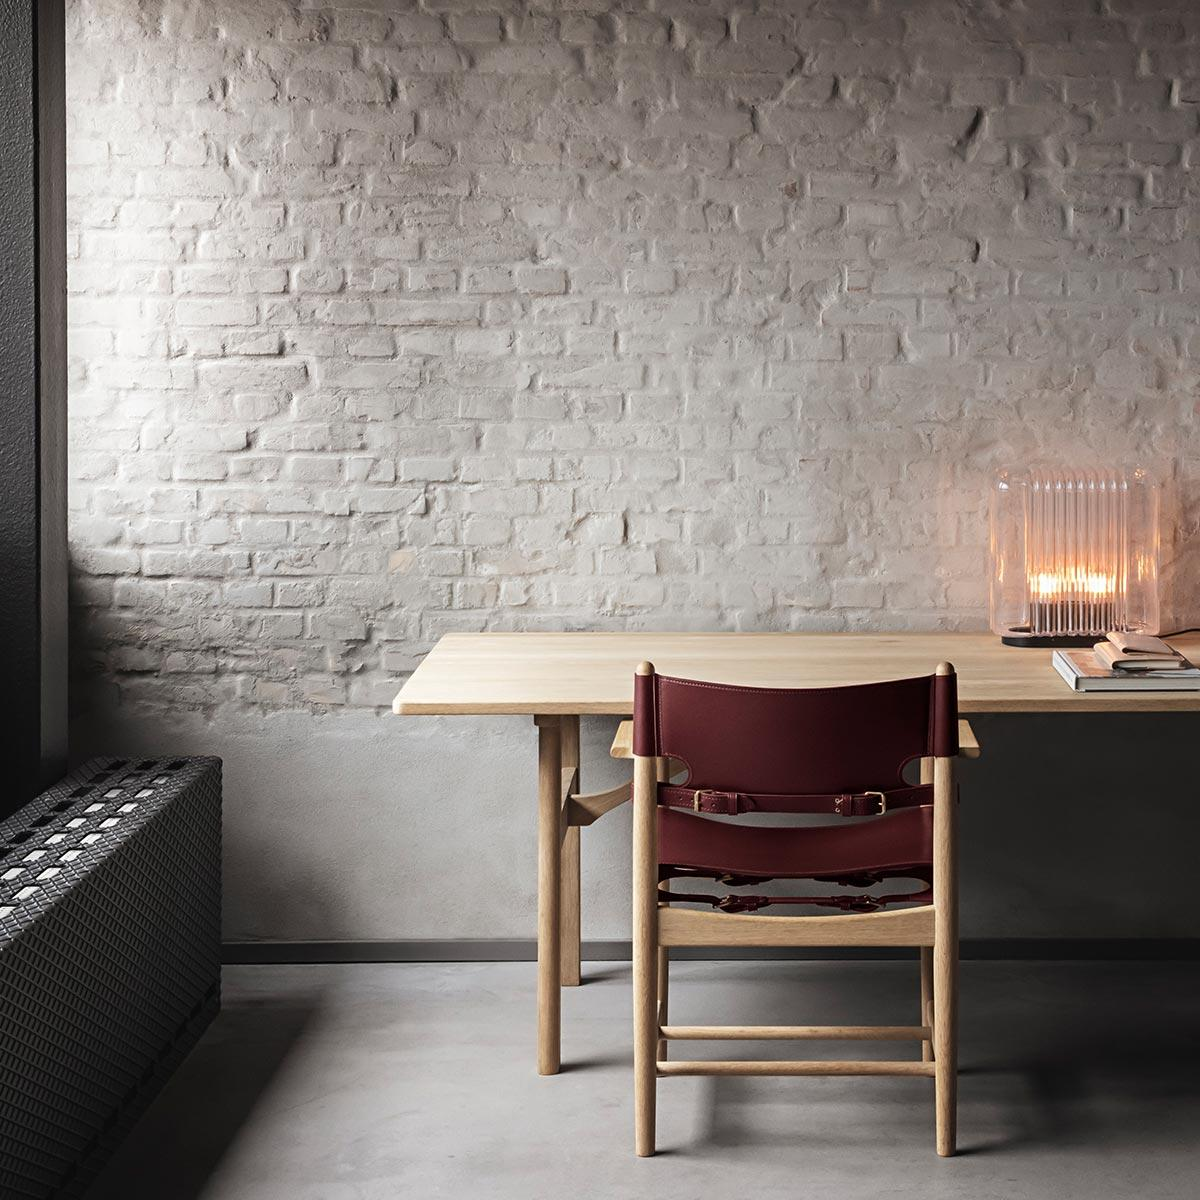 borge-mogensen-spanish-dining-chair-arms-deep-red-insitu-1200